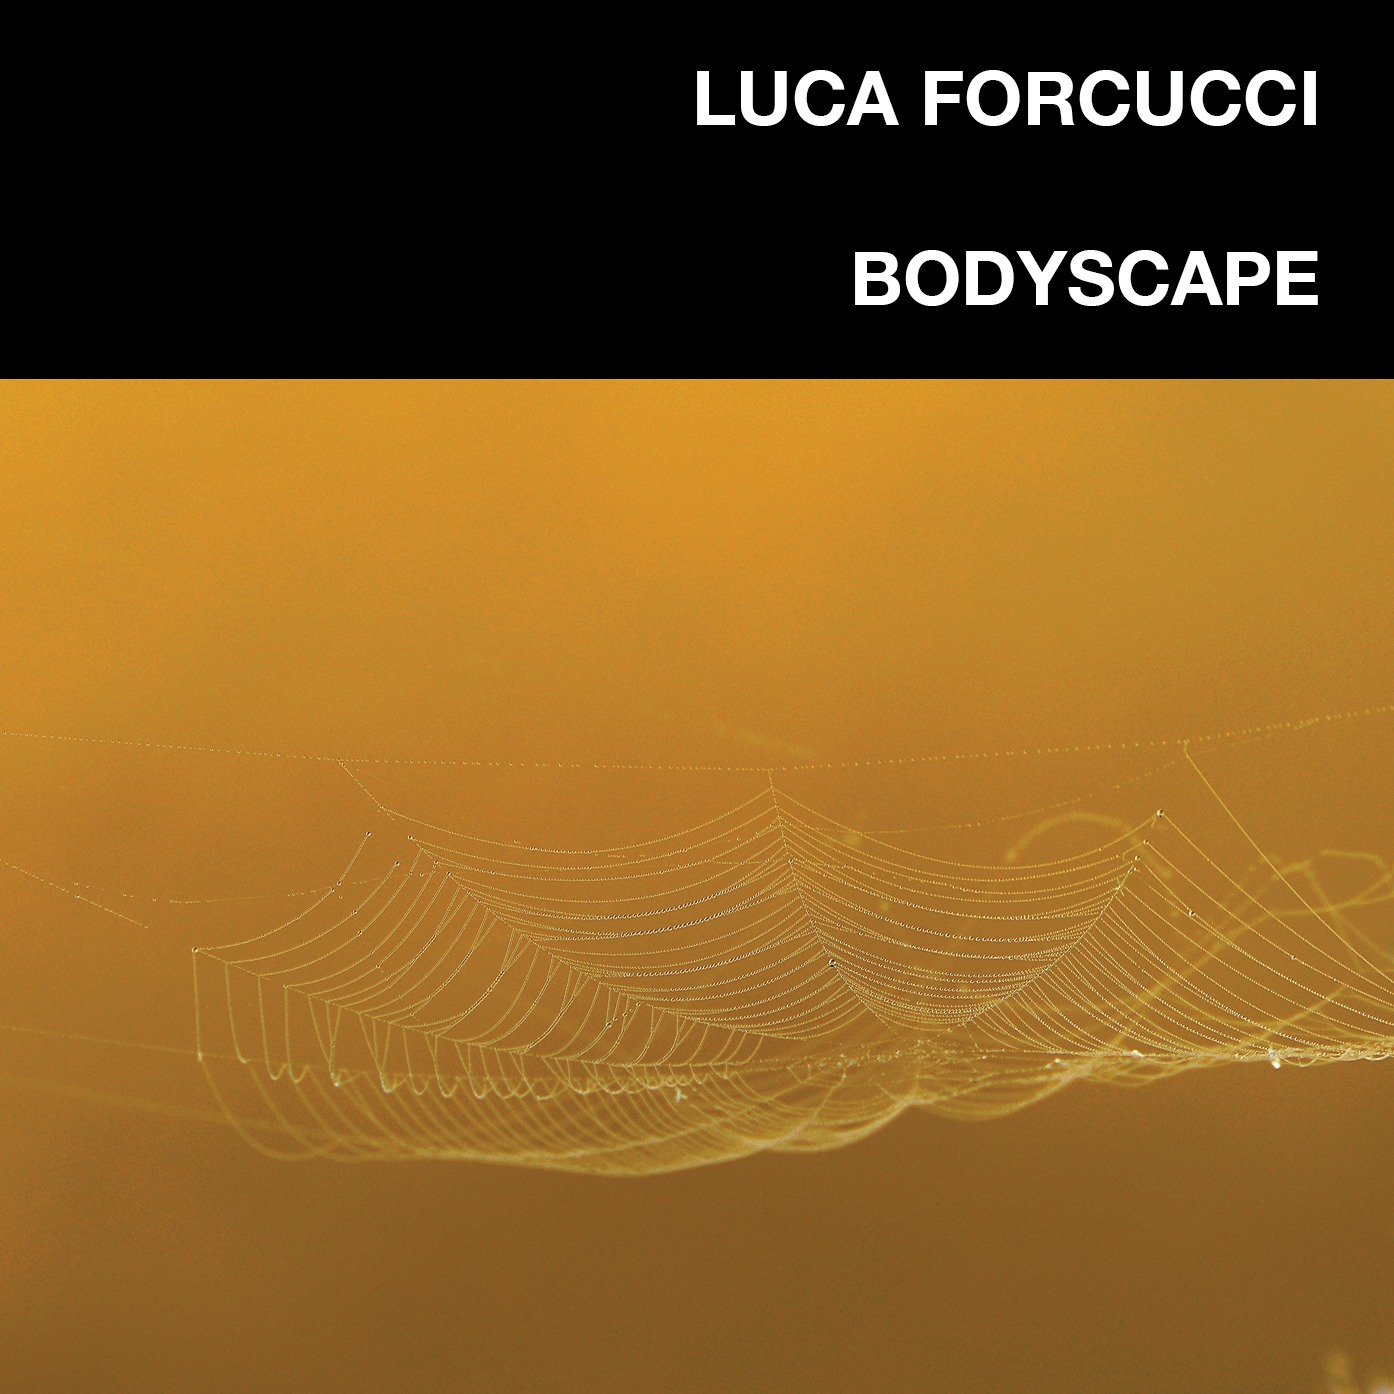 Luca Forcucci Bodyscape album